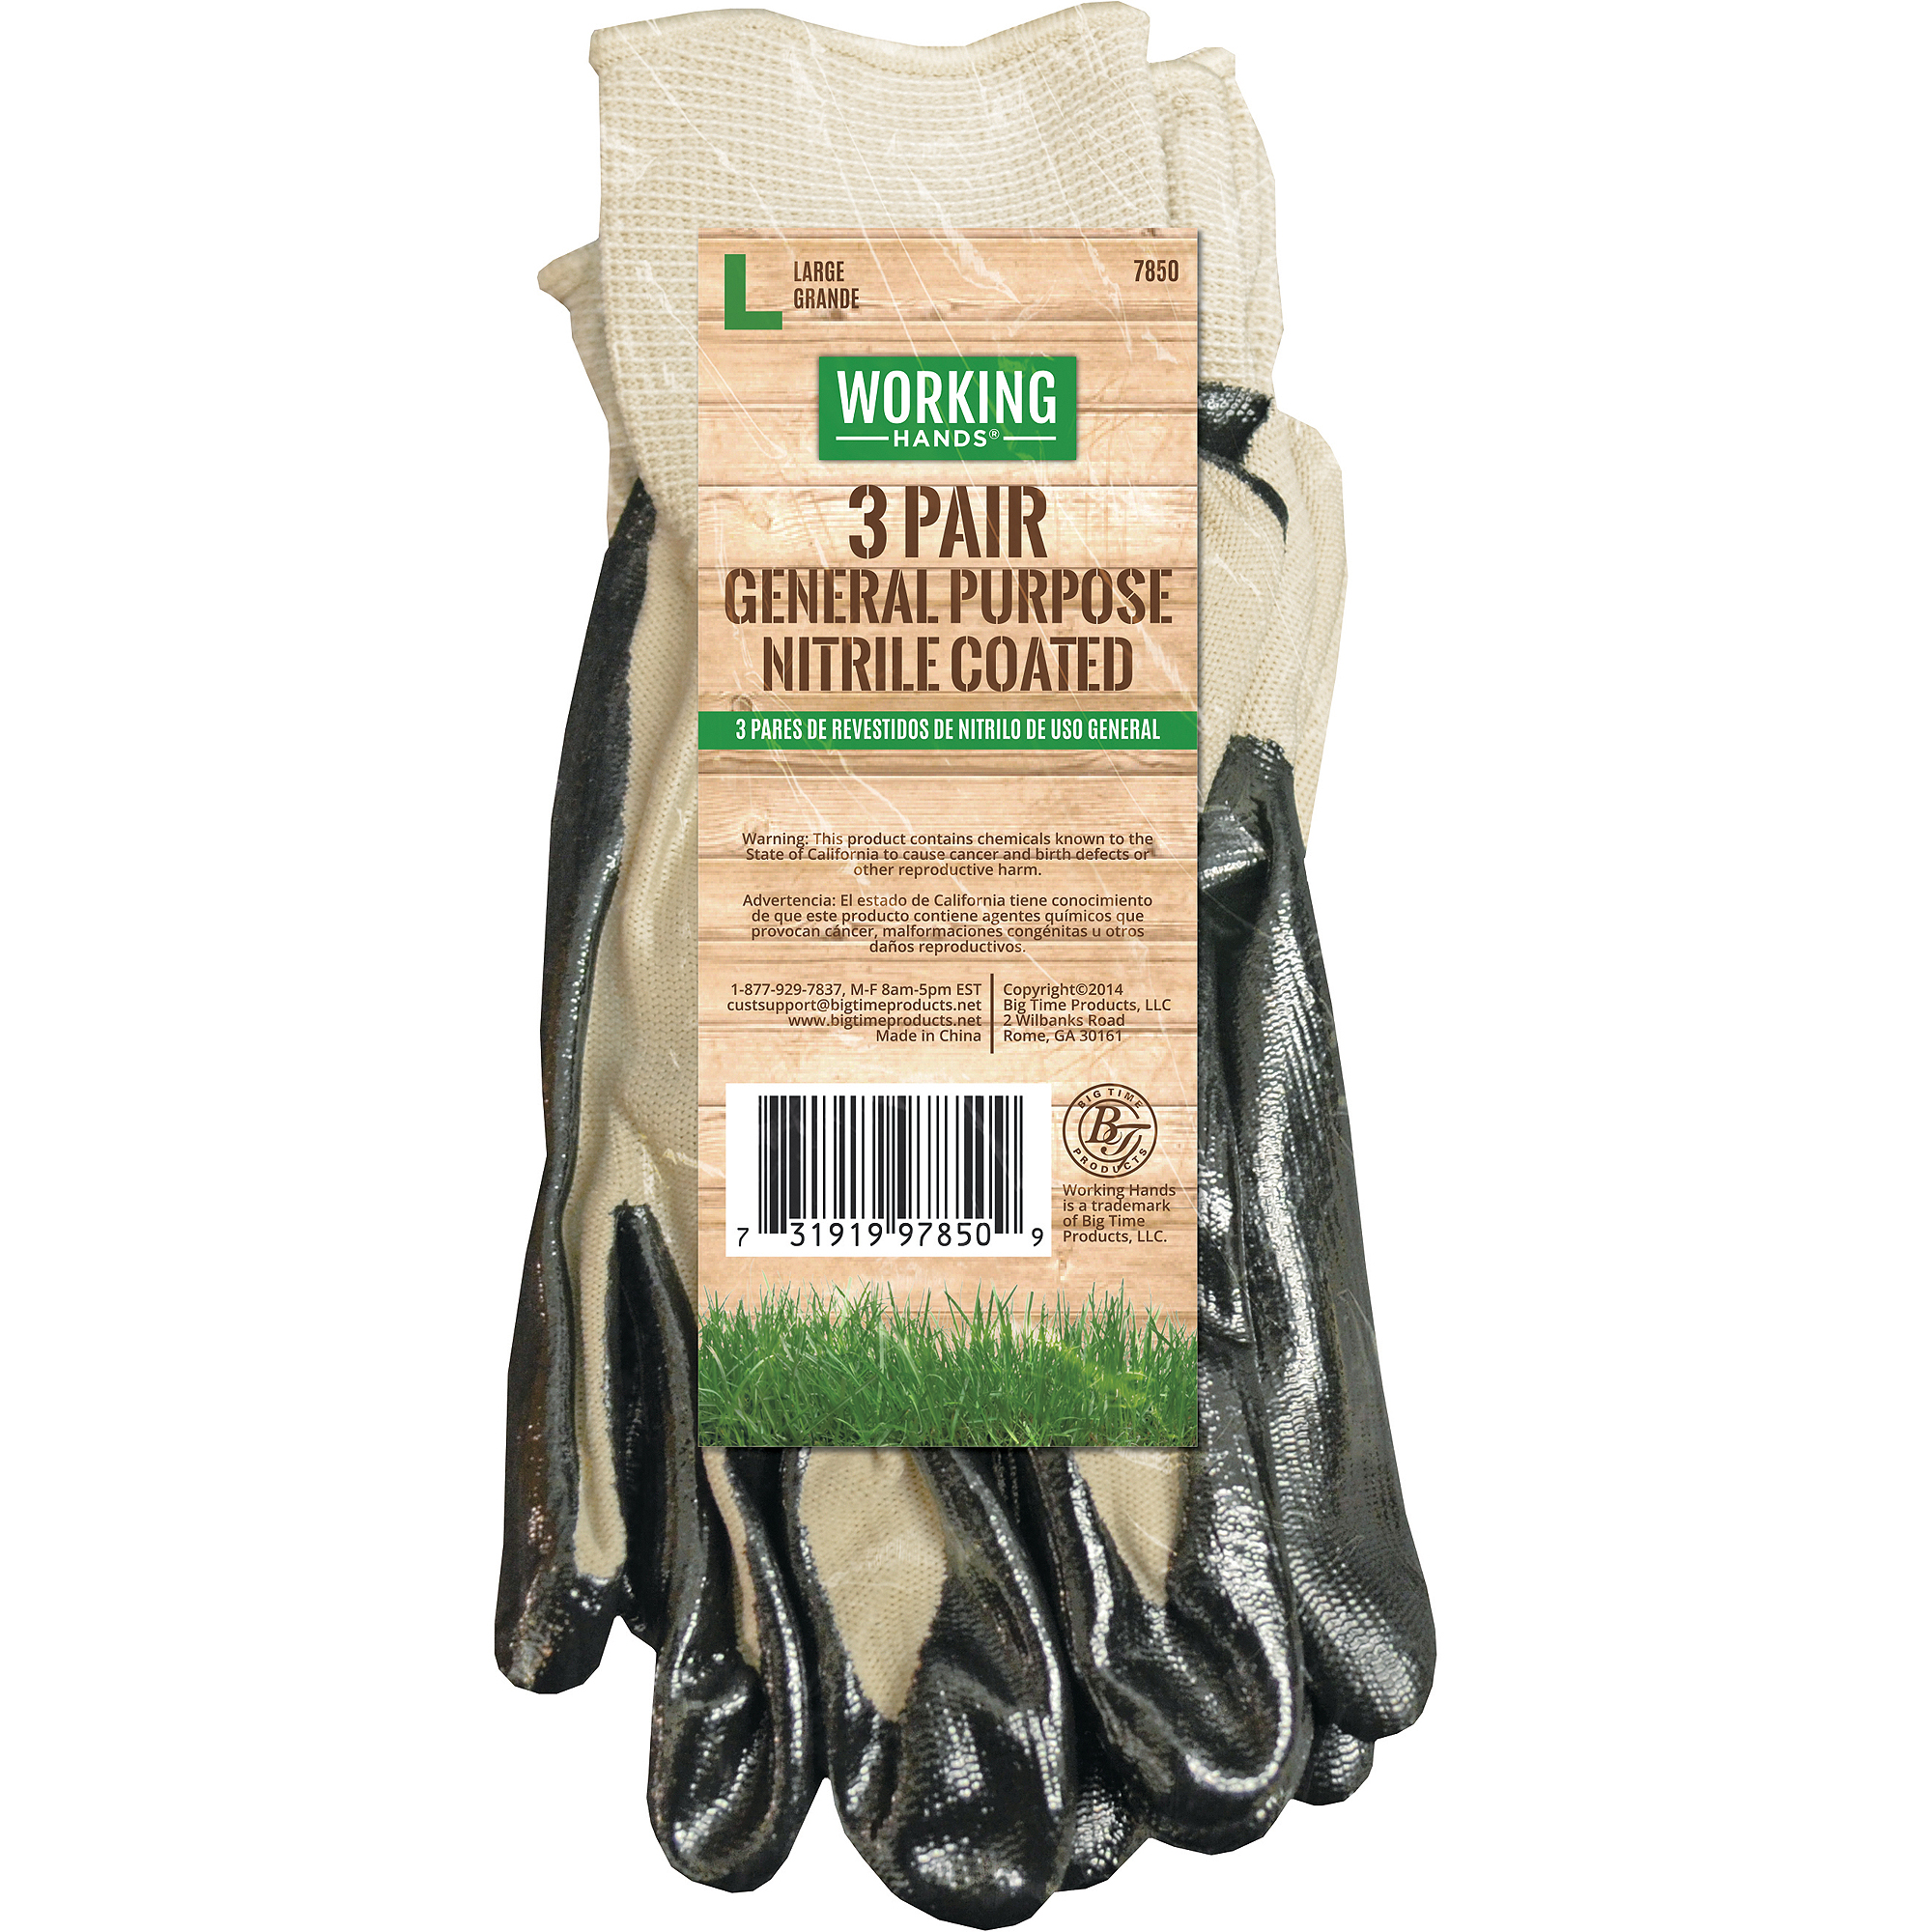 Working Hands Men's Nitrile-Dipped Gloves, 3pk